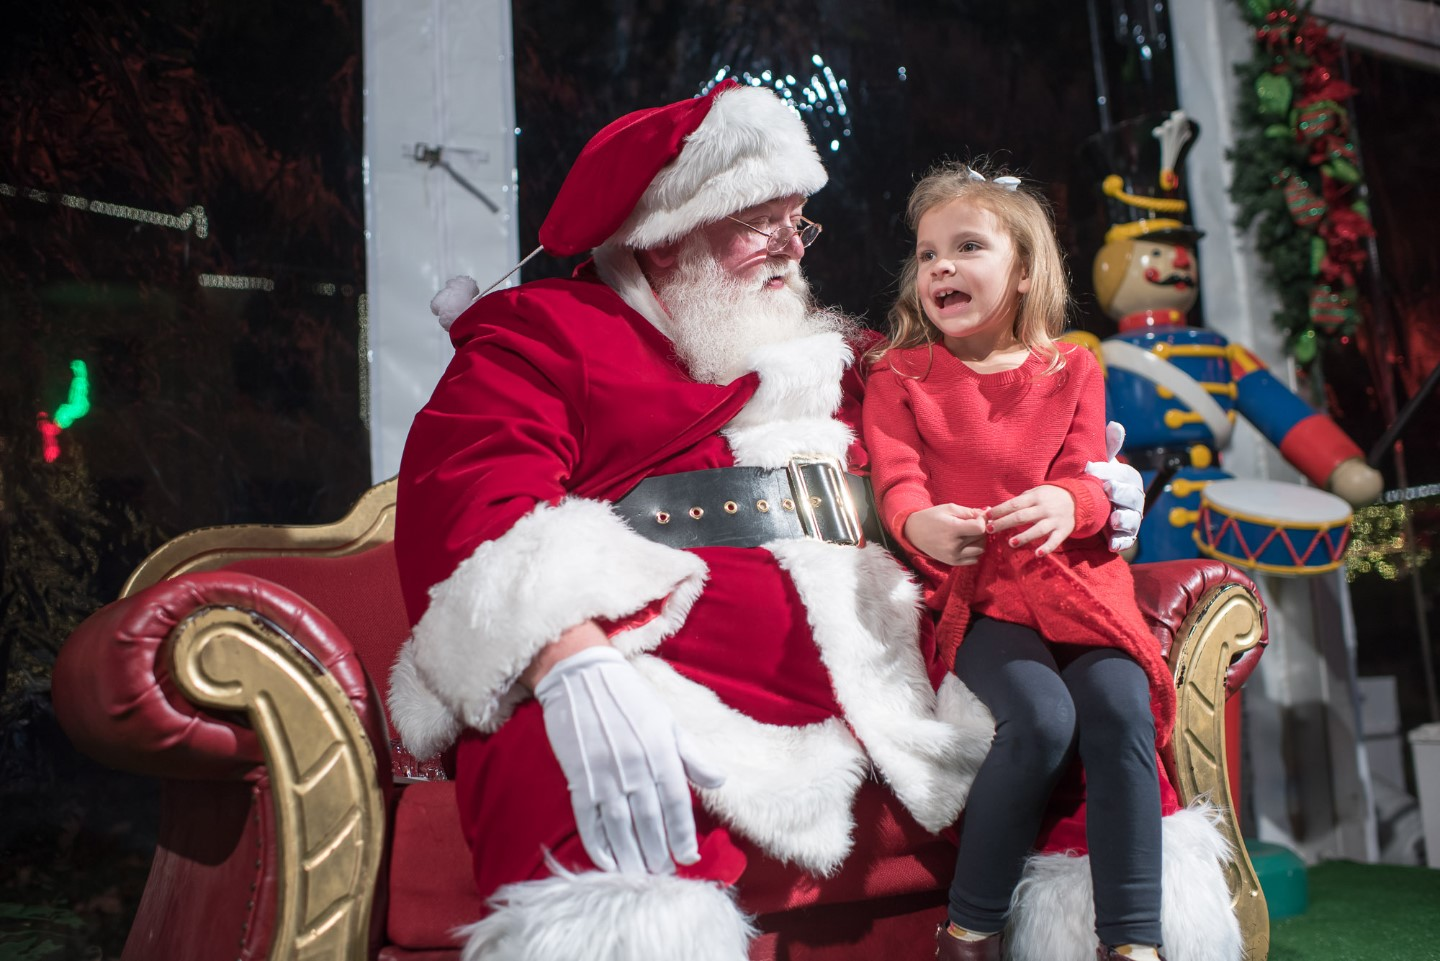 Santa Claus at Christmas Village at Bayou Bend